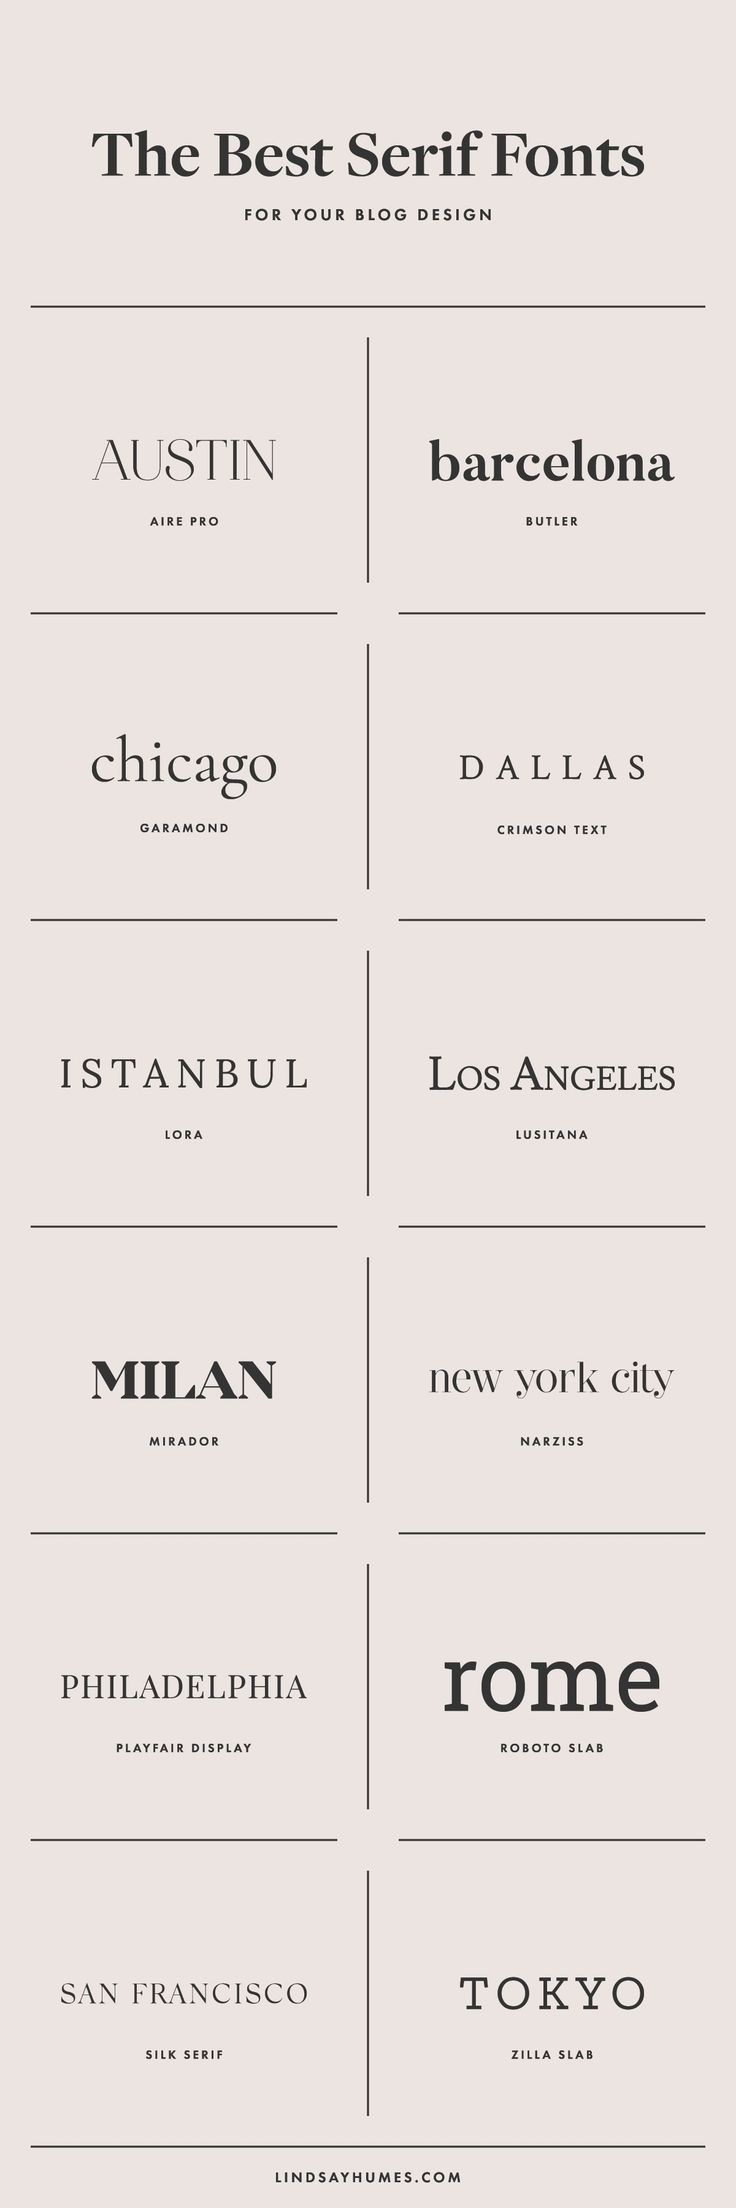 446 best Typography and Lettering images on Pinterest | Charts ...